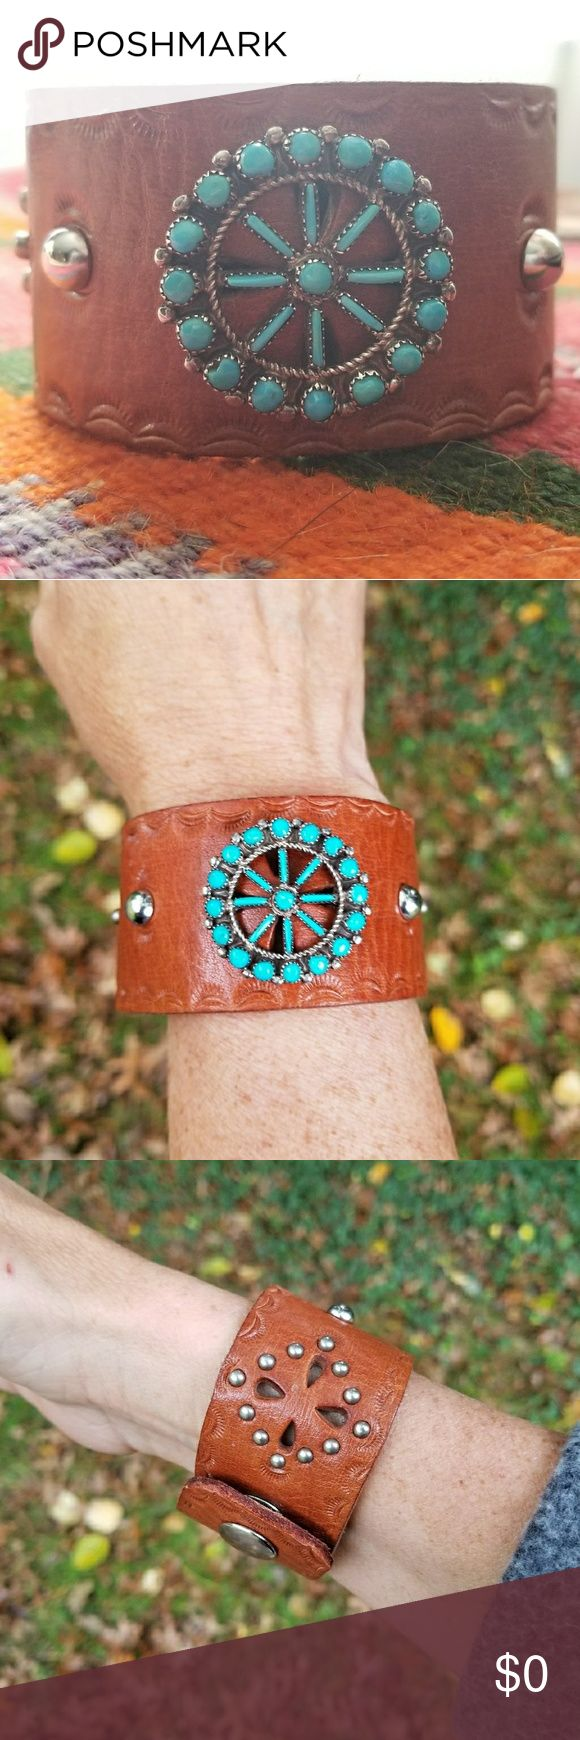 Zuni Needlepoint Snake Eye Turquoise Leather Cuff Vintage Zuni Wheel featuring gorgeous blue Sleeping Beauty Turquoise needle point and snake eye cabachons handcut and set in sterling silver by the Native American tribe famous for their intricate lapidary skills. I attached the wheel to this vintage leather belt featuring tiny studs in a diamond pattern around tear drop cut outs.  I added two domed rivets and hand tooling. Snap closure. Jewelry Bracelets